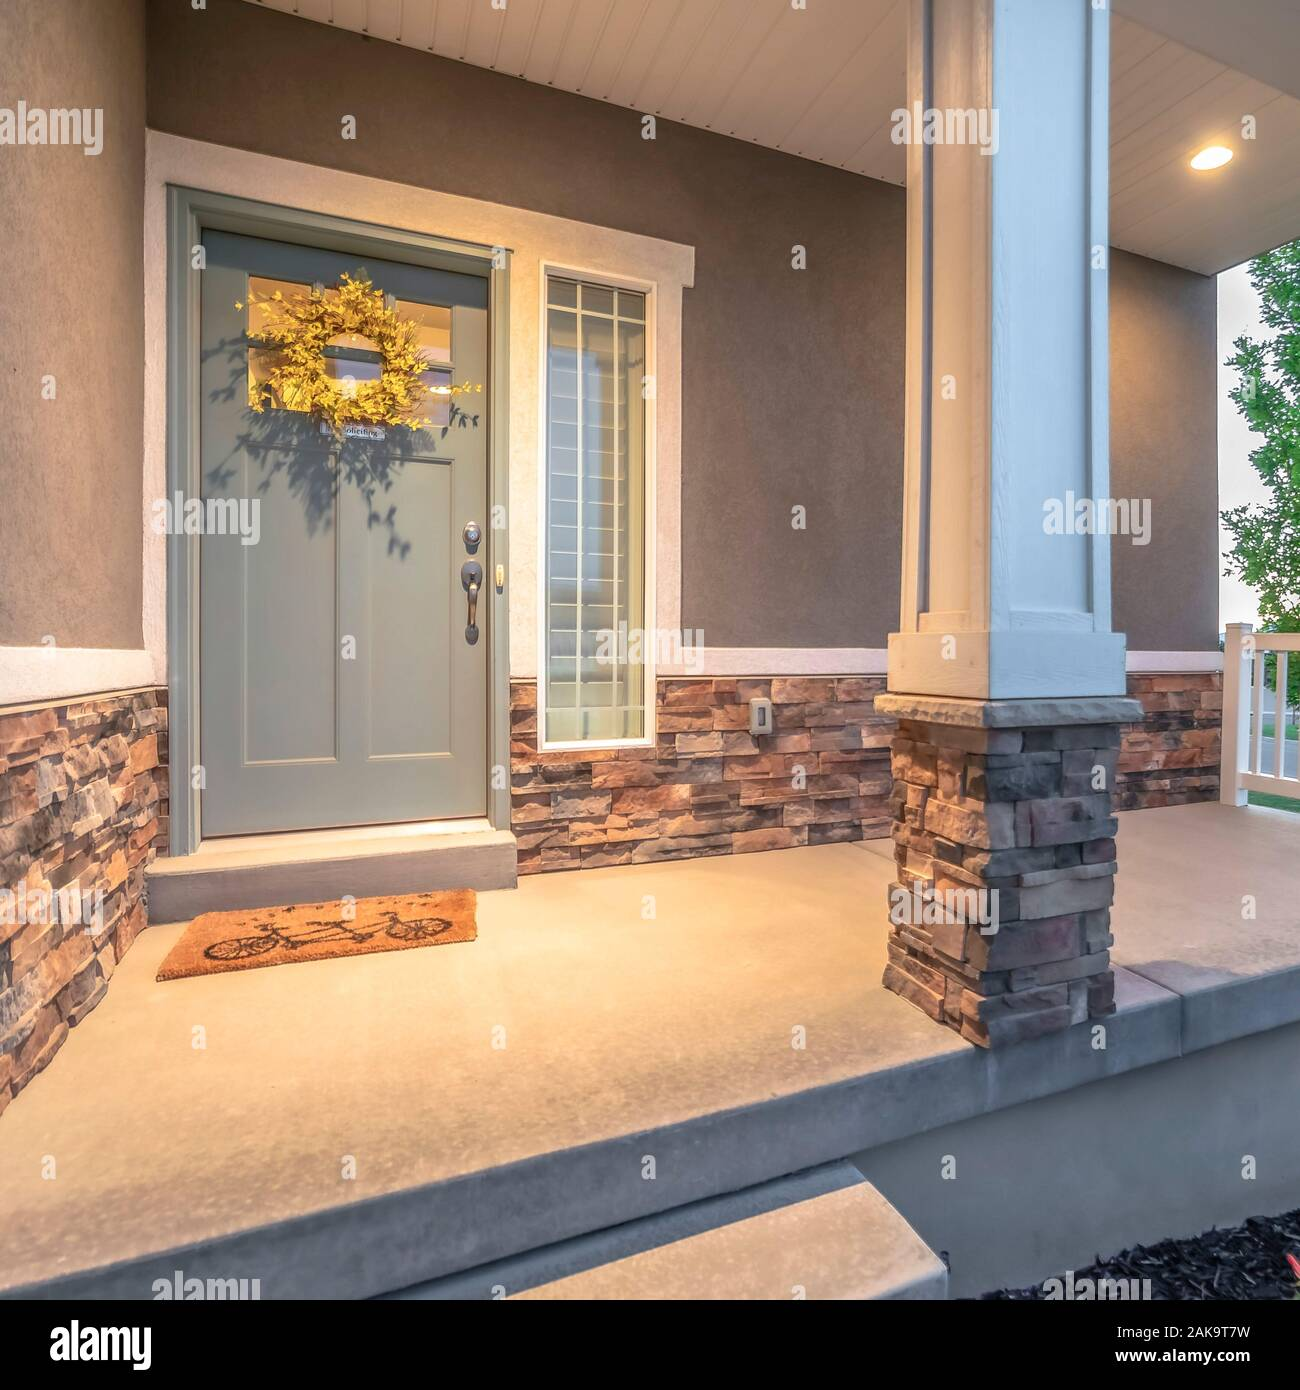 Square Frame Home Facade With Pillars And Railing On The Porch And Wreath On The Gray Door Stock Photo Alamy